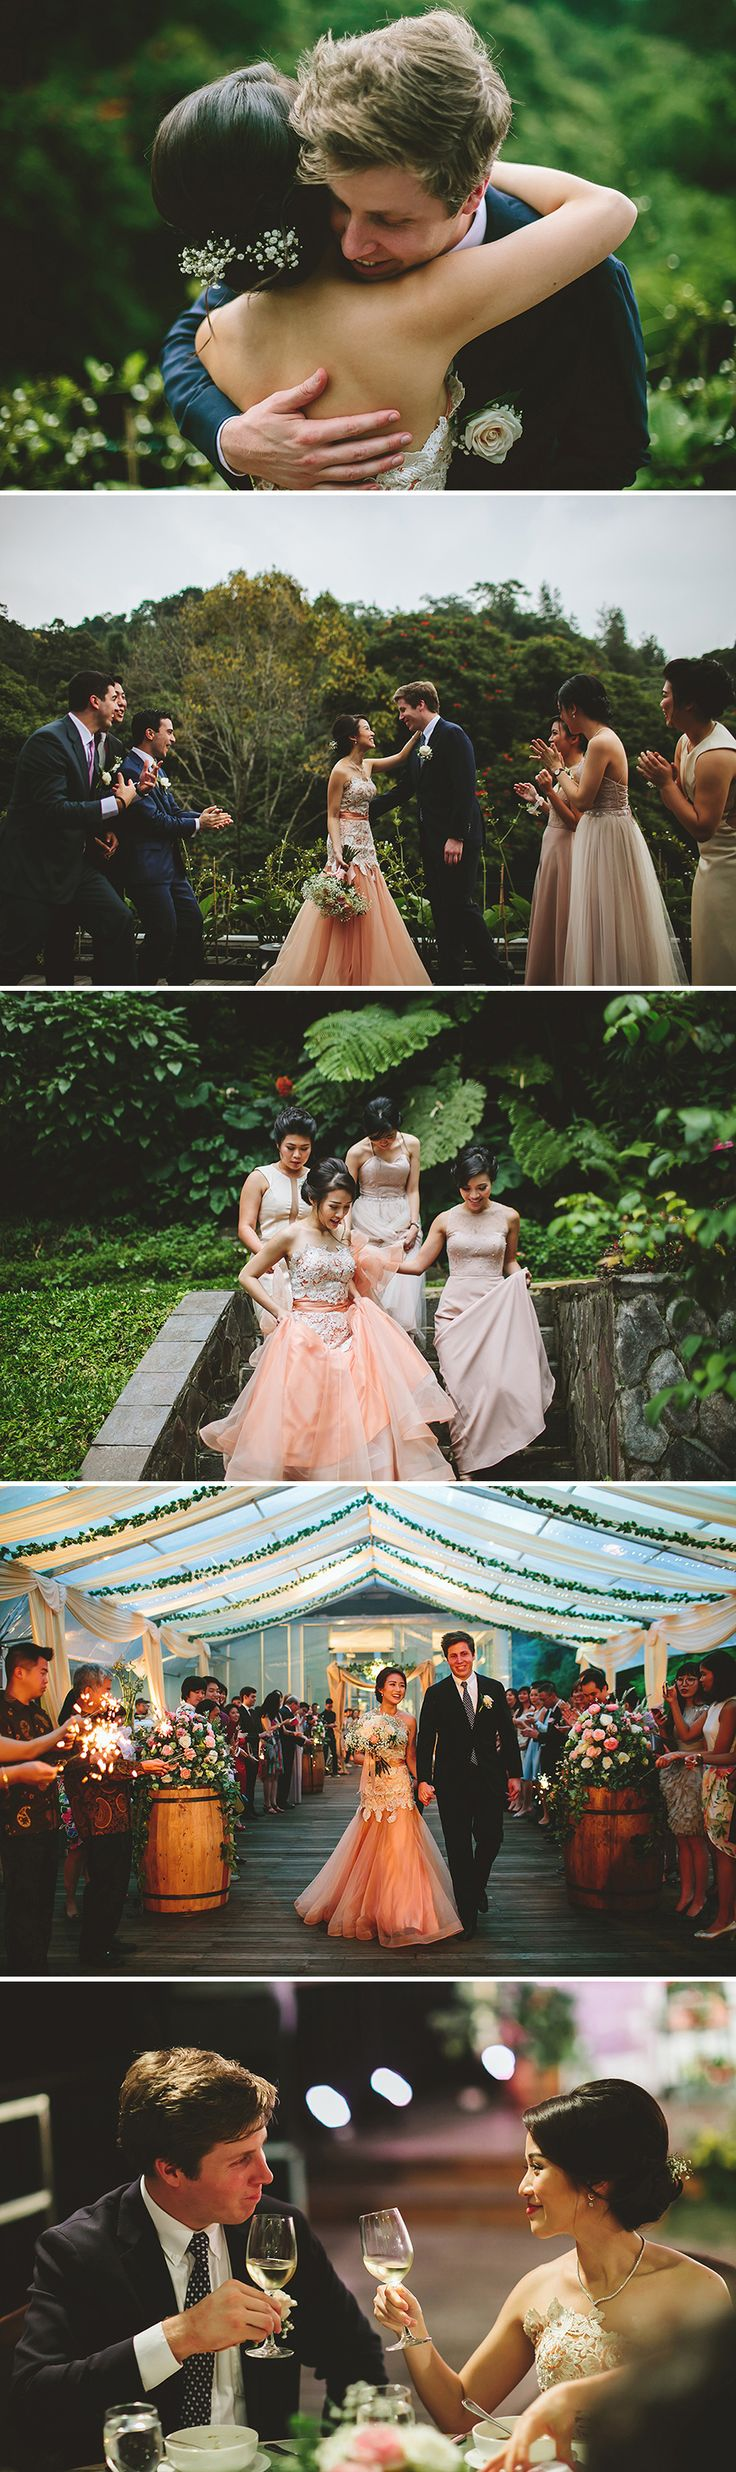 371 best destination weddings images on pinterest bridal beautiful destination wedding at padma hotel bandung with lots of greenery this rustic and junglespirit Images